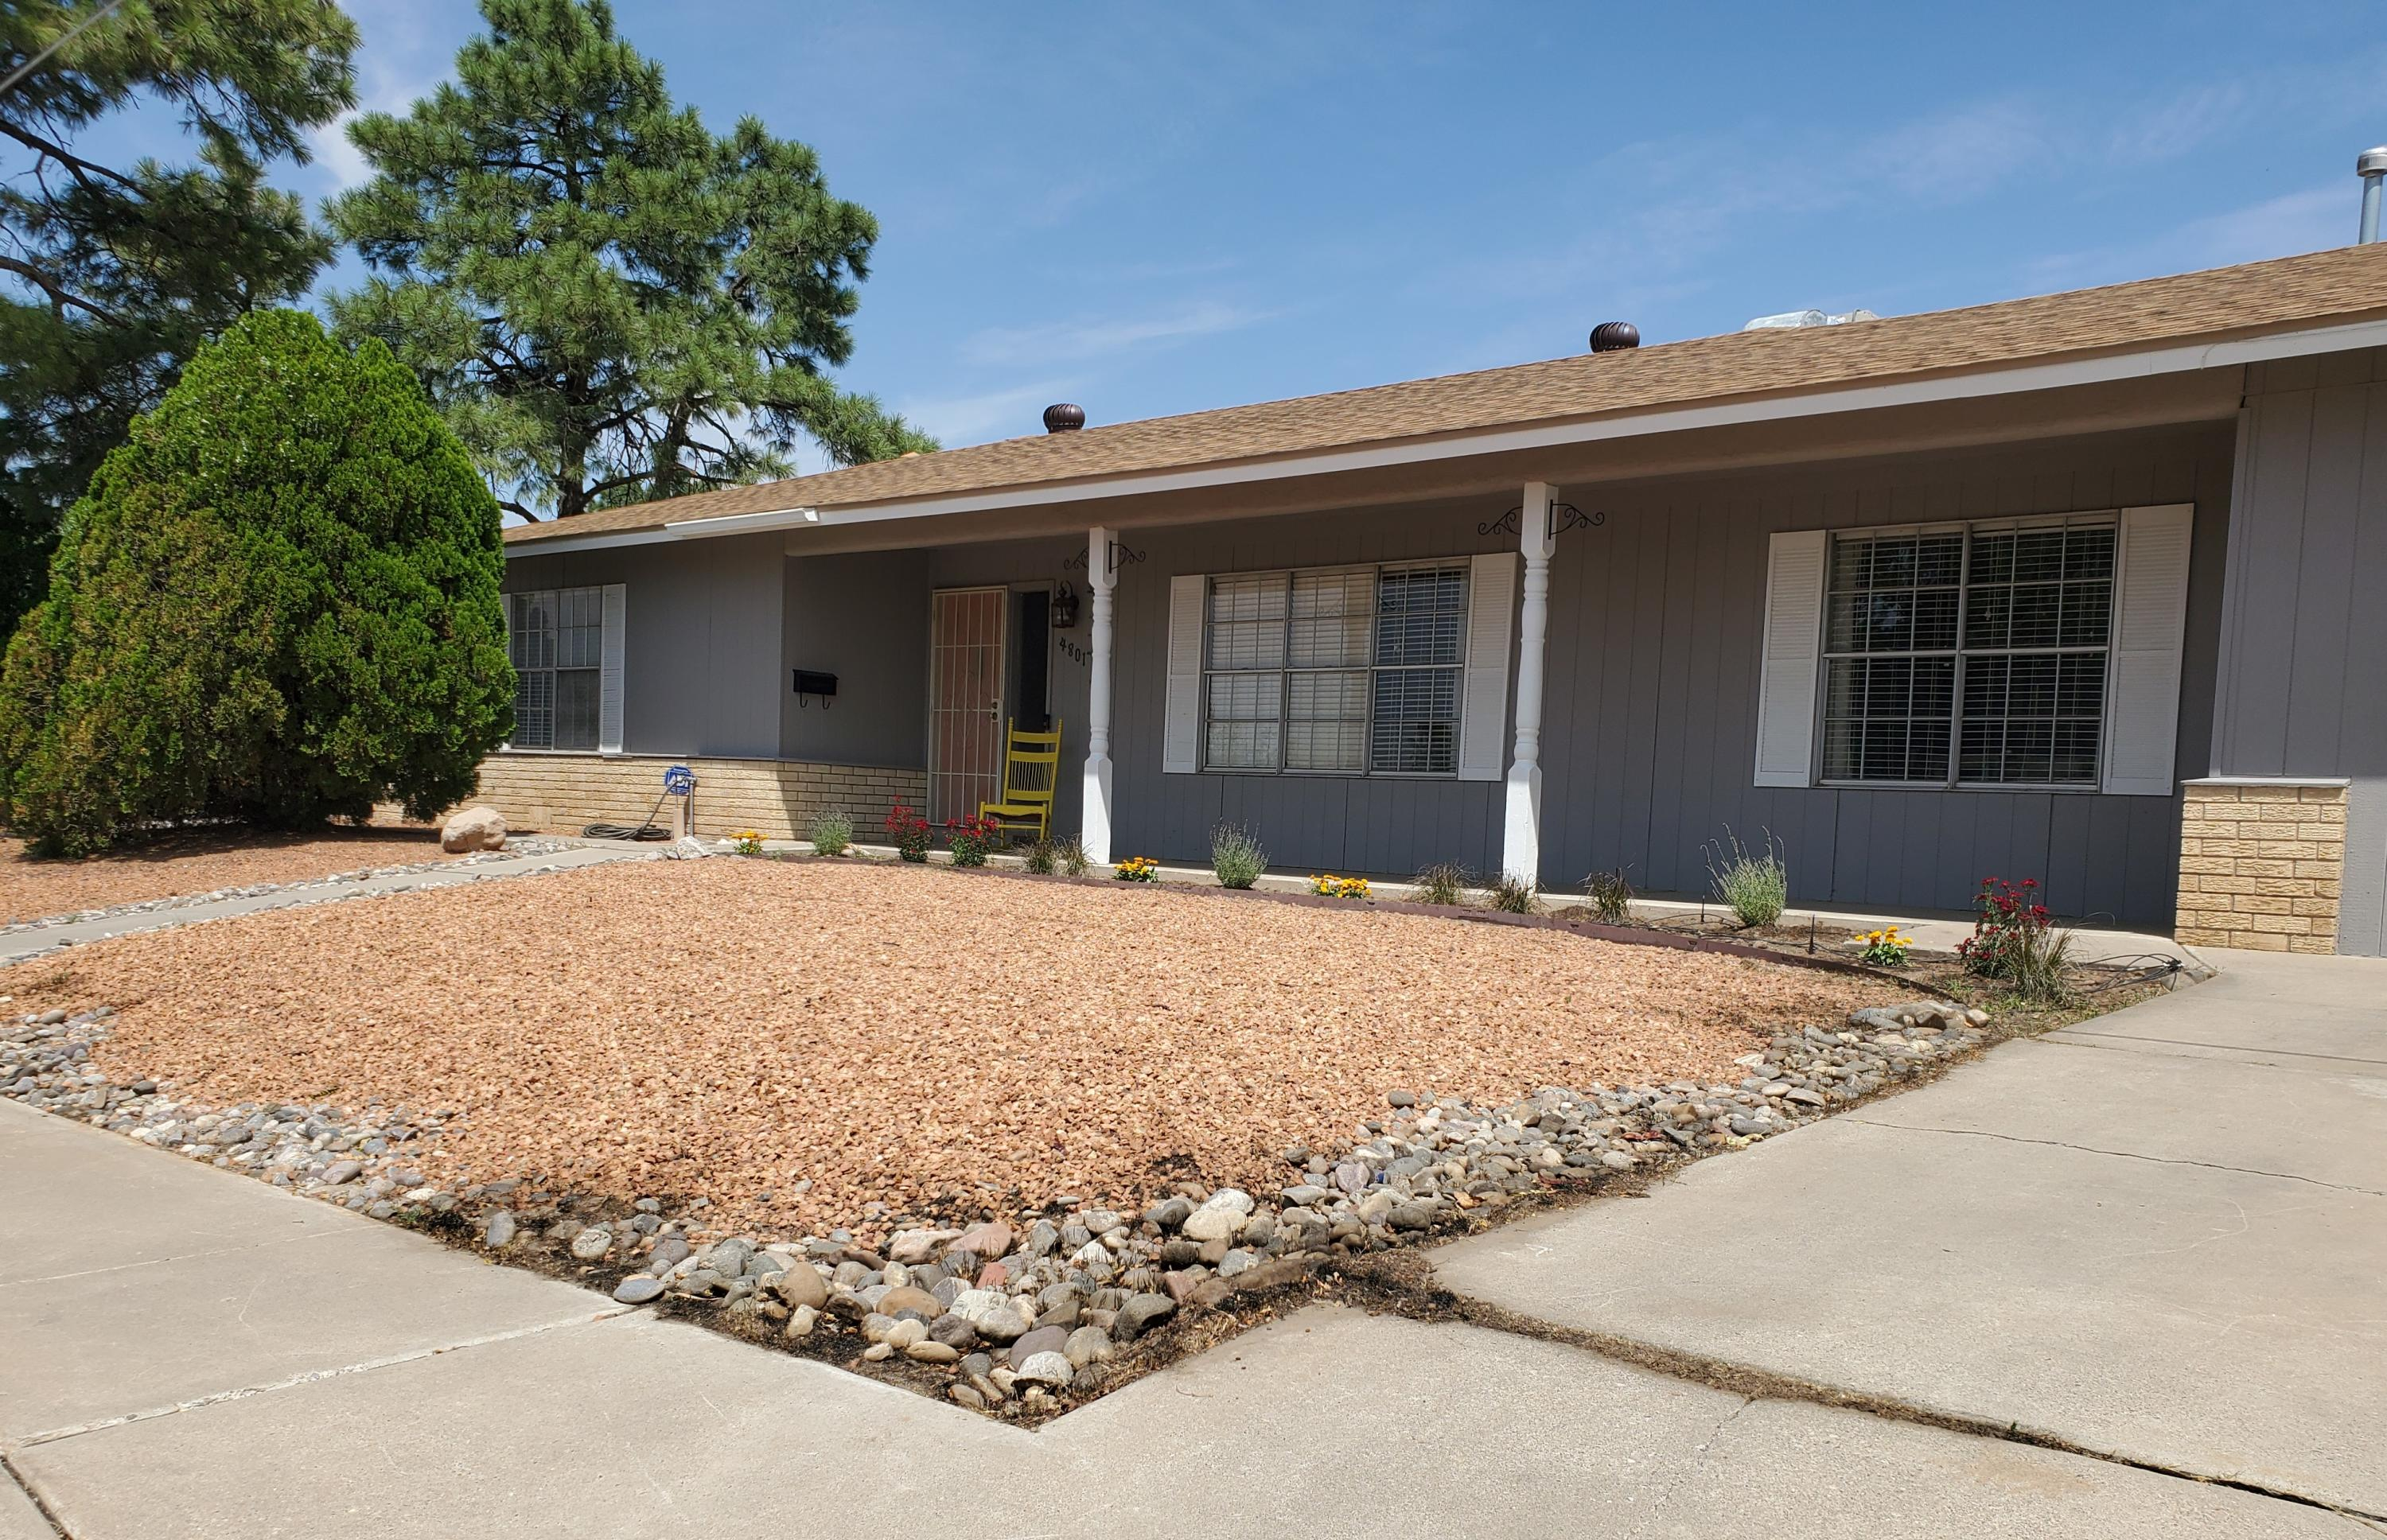 Great home in a great location! This quiet neighborhood north of UNM is near Nob Hill and convenient to most of the city. This very spacious house sits on a large corner lot and has many updates. Bamboo floors in living and dining areas, tile in the kitchen and warm carpet in bedrooms. Two Primary Suites with their own bathrooms and a third bathroom too.  They have all been updated! 4th bedroom could also make a great office. The kitchen is very large with plenty of cabinets and room for a breakfast nook.  Stainless appliances stay. Outdoors you will find a large deck and a patio that are great for entertaining.  The large storage shed has plenty of room and you will love the shade from the mature trees. Roof replaced in 2019. Don't miss this one!